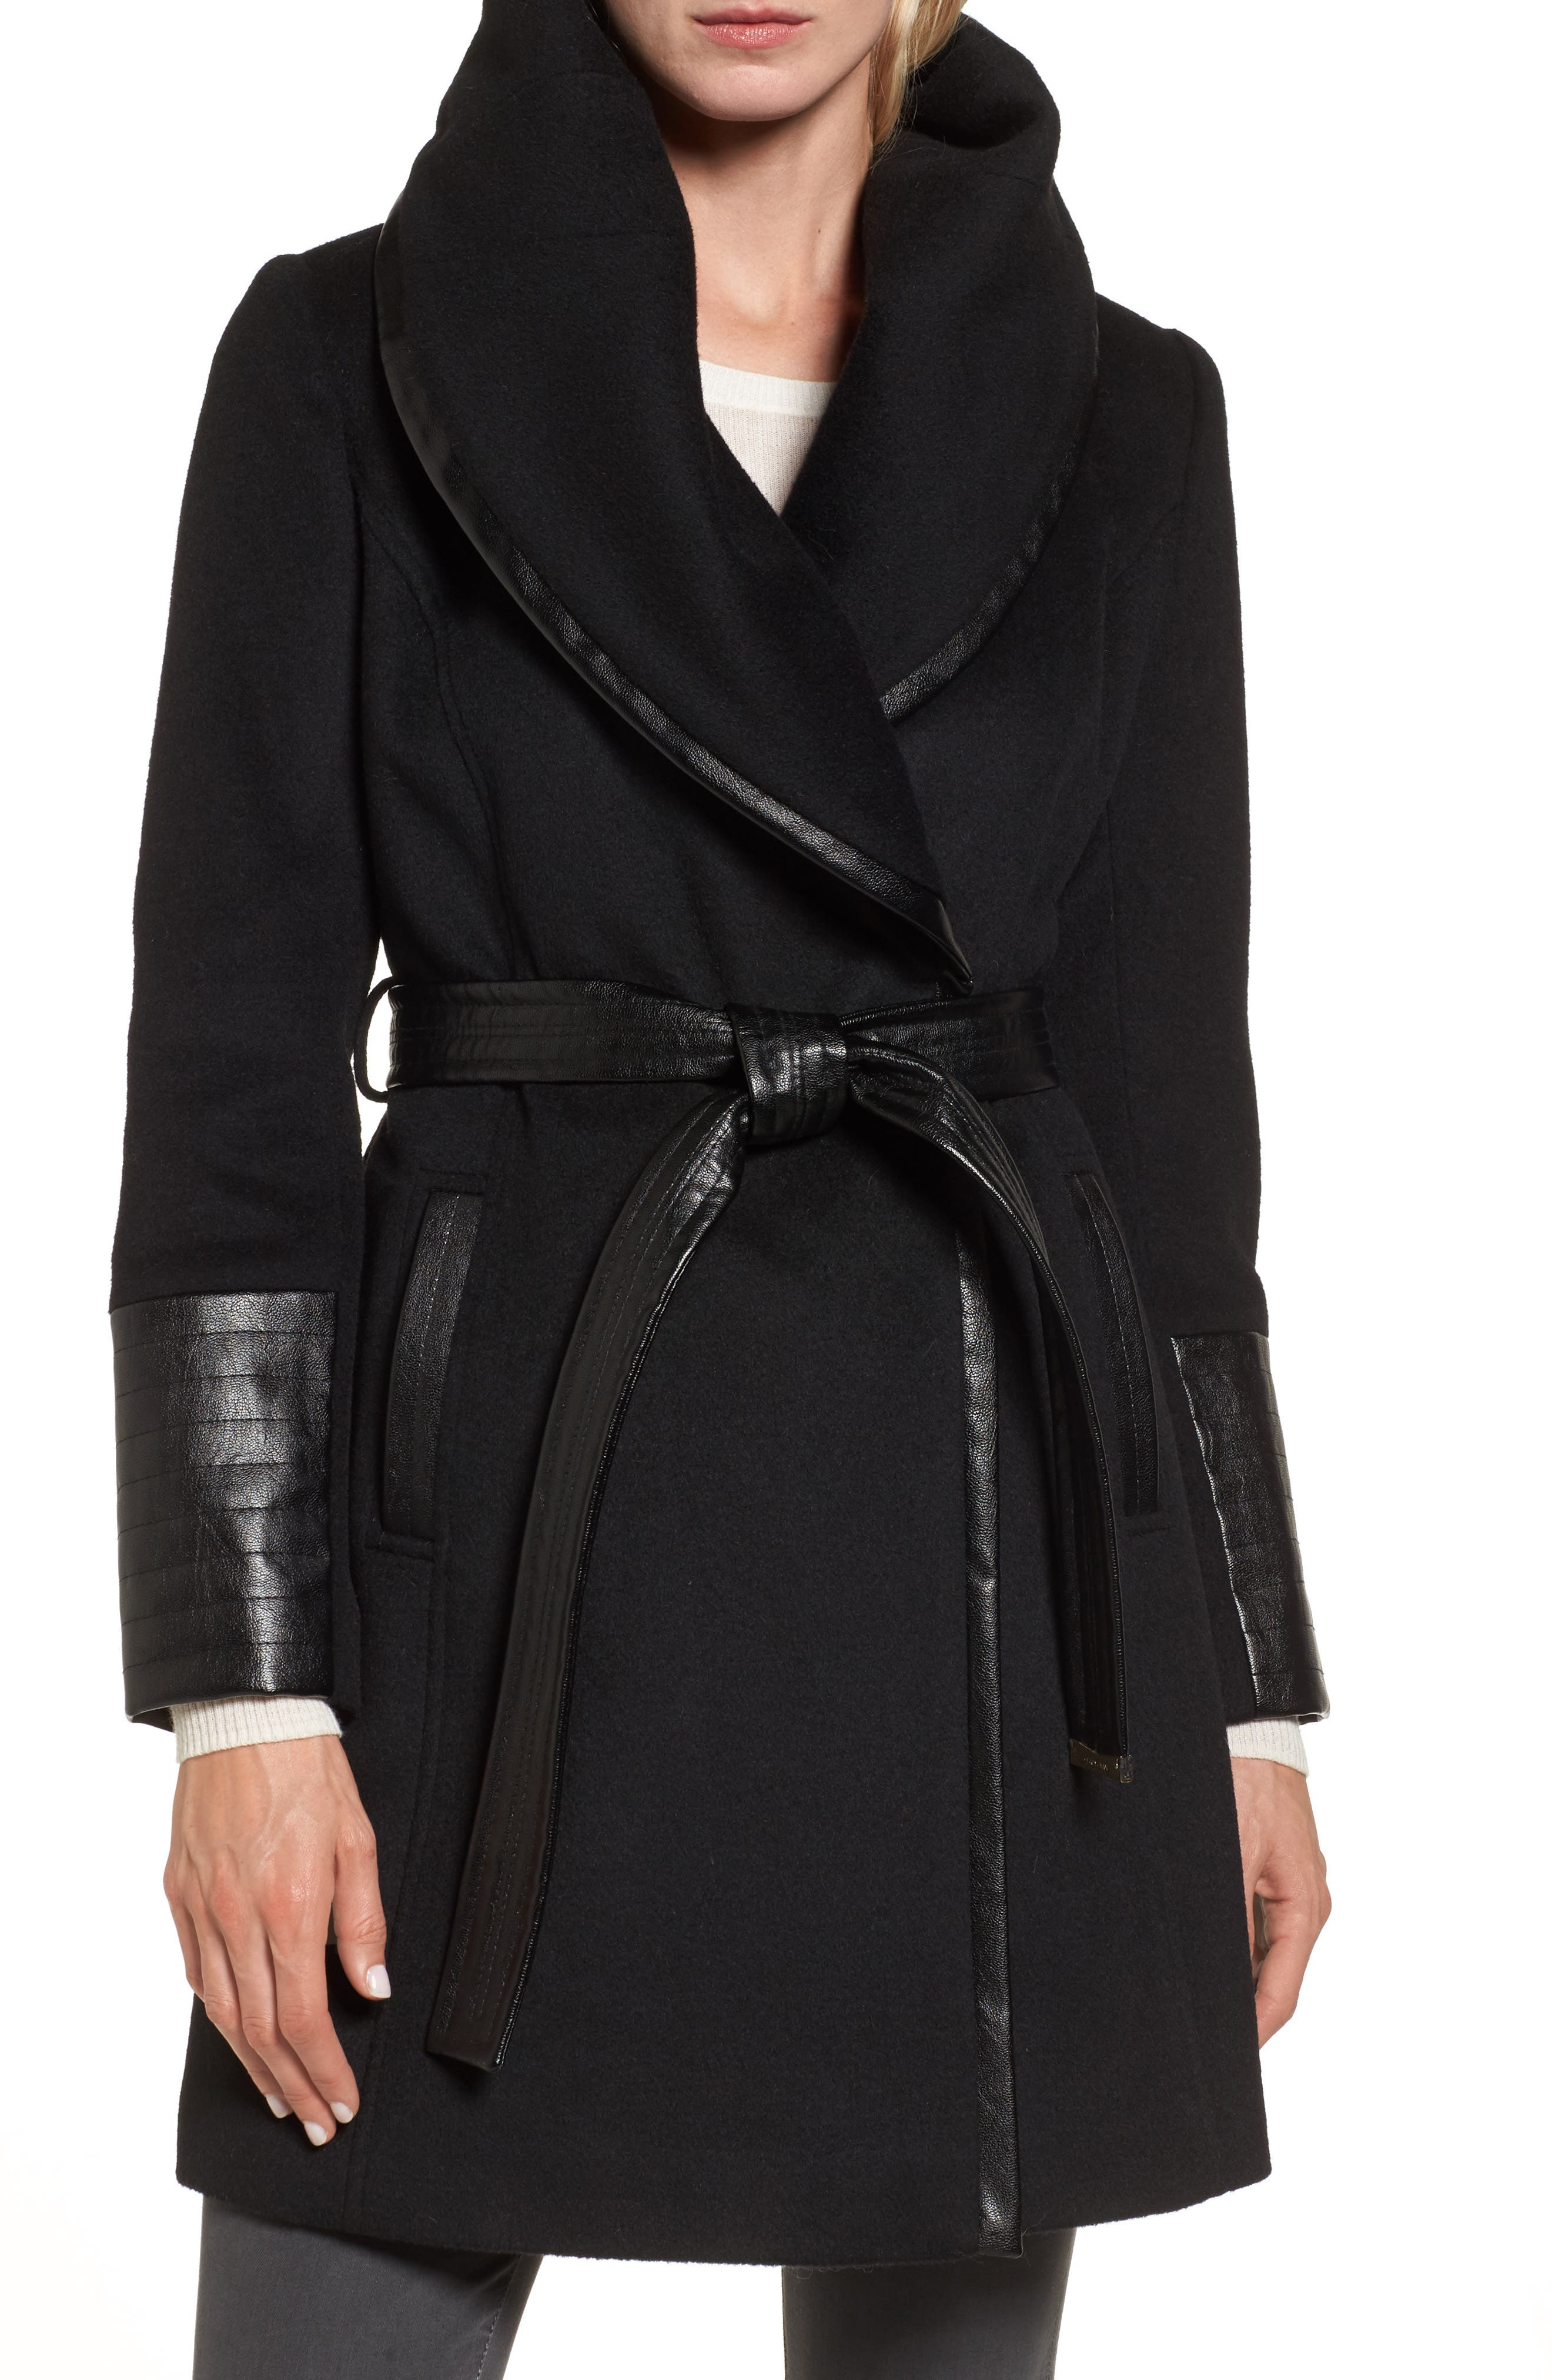 Wool Blend Coat,                         Main,                         color, Black